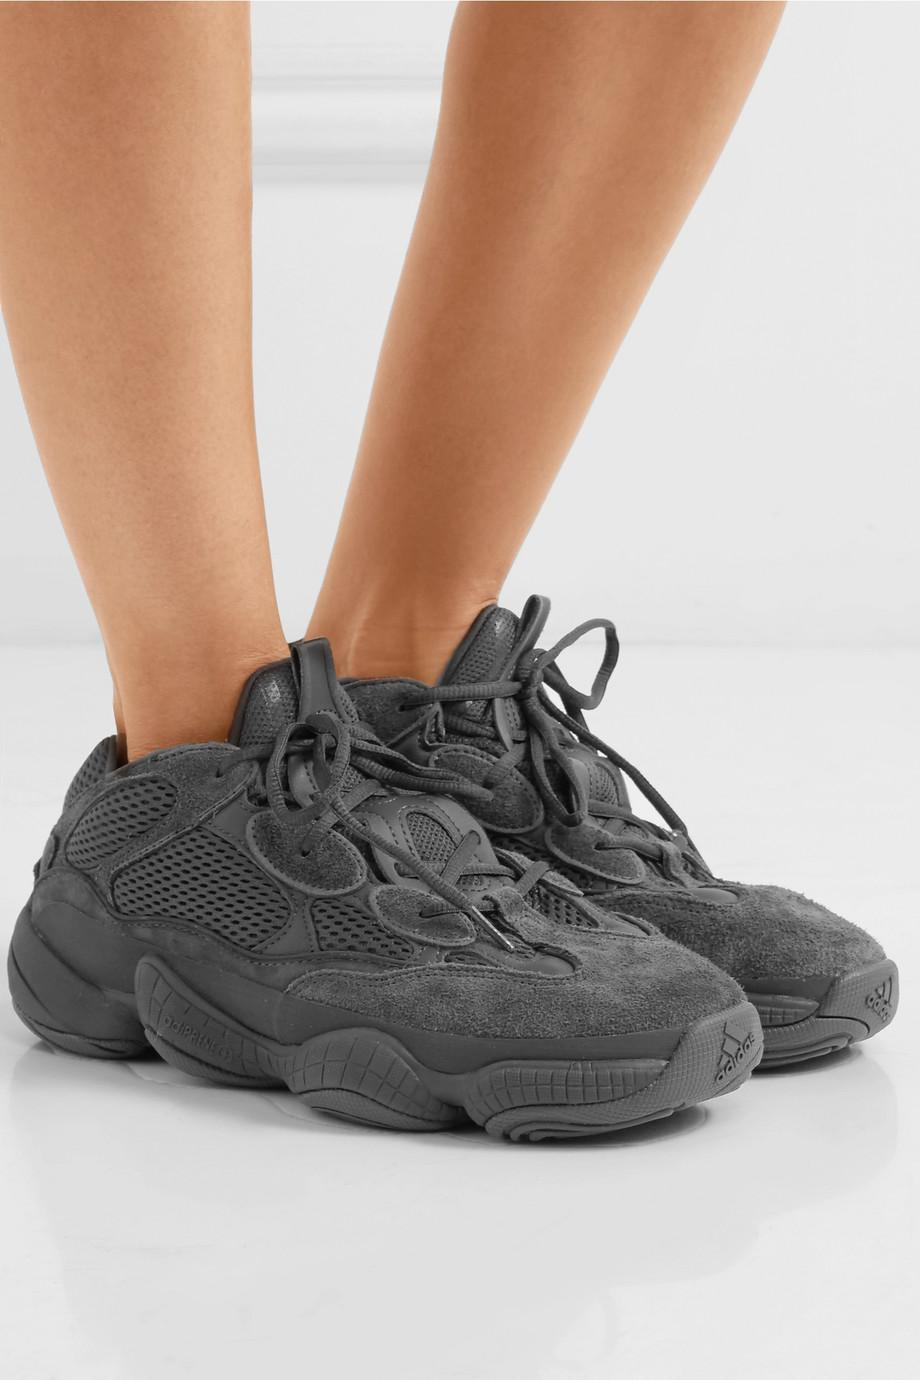 8b99a8e64b7ab Adidas Originals Black Kanye West Yeezy 500 Desert Rat Suede And Mesh  Sneakers